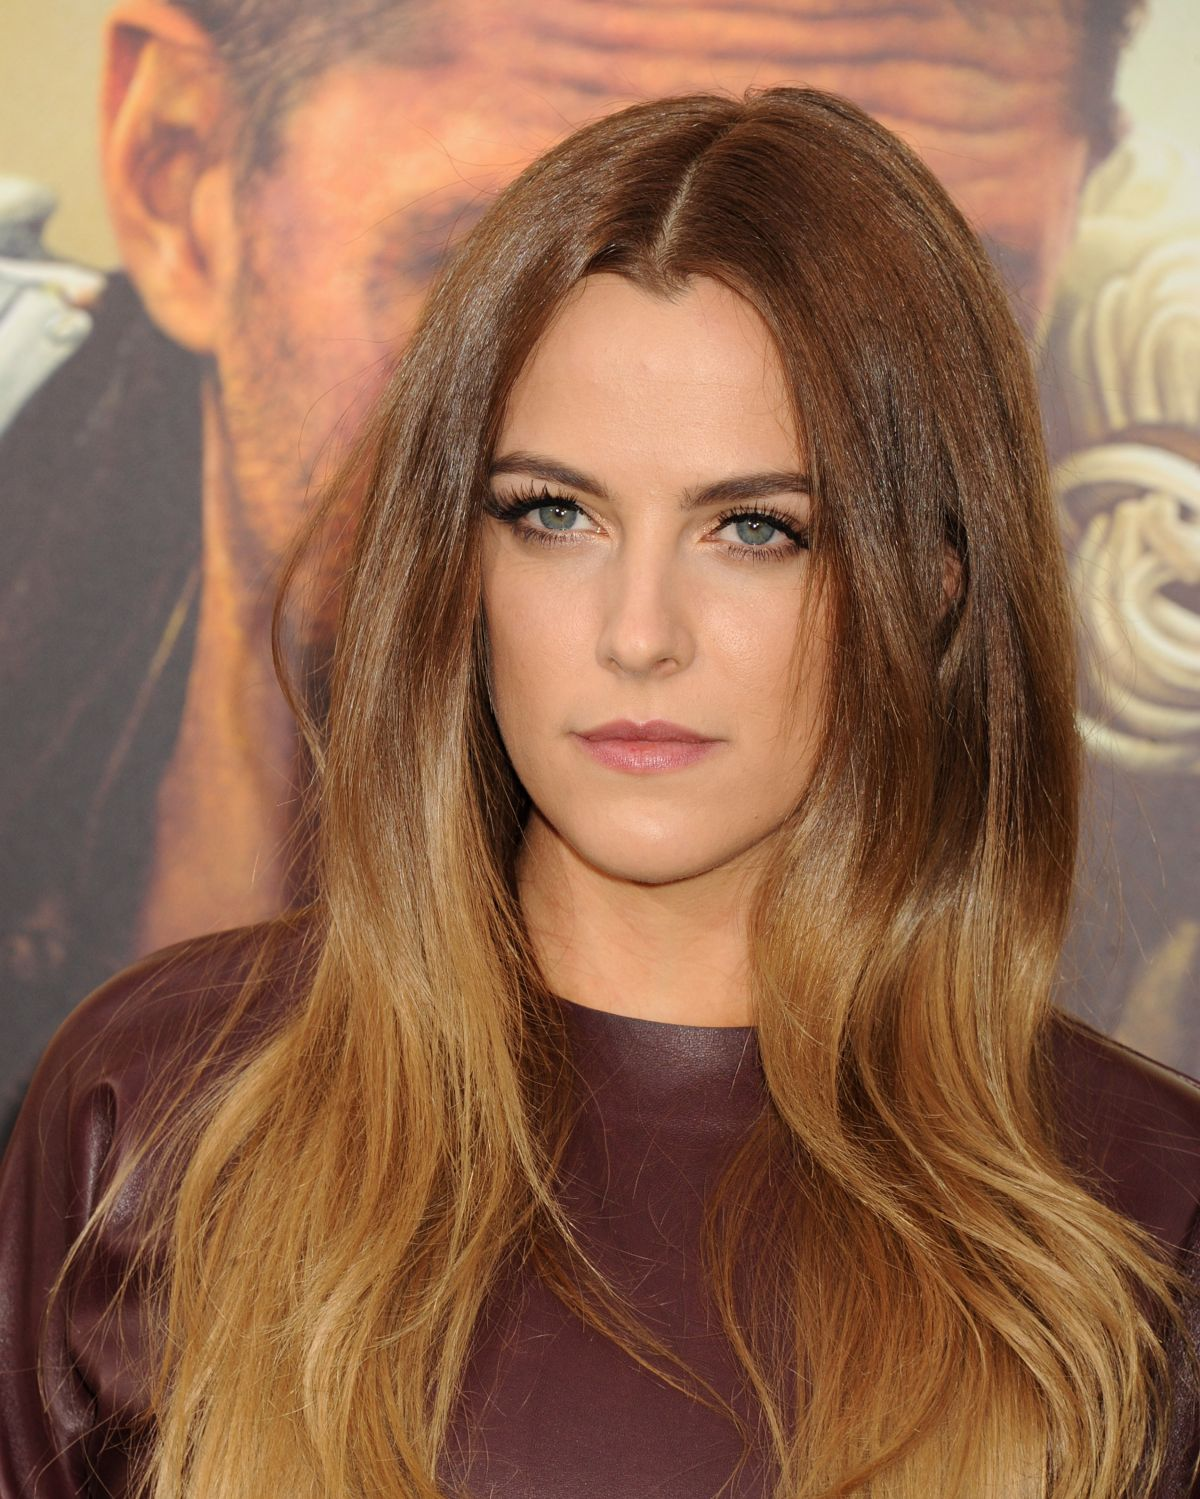 RILEY KEOUGH at Mad Max: Fury Road Premiere in Hollywood ... Charlize Theron Movies